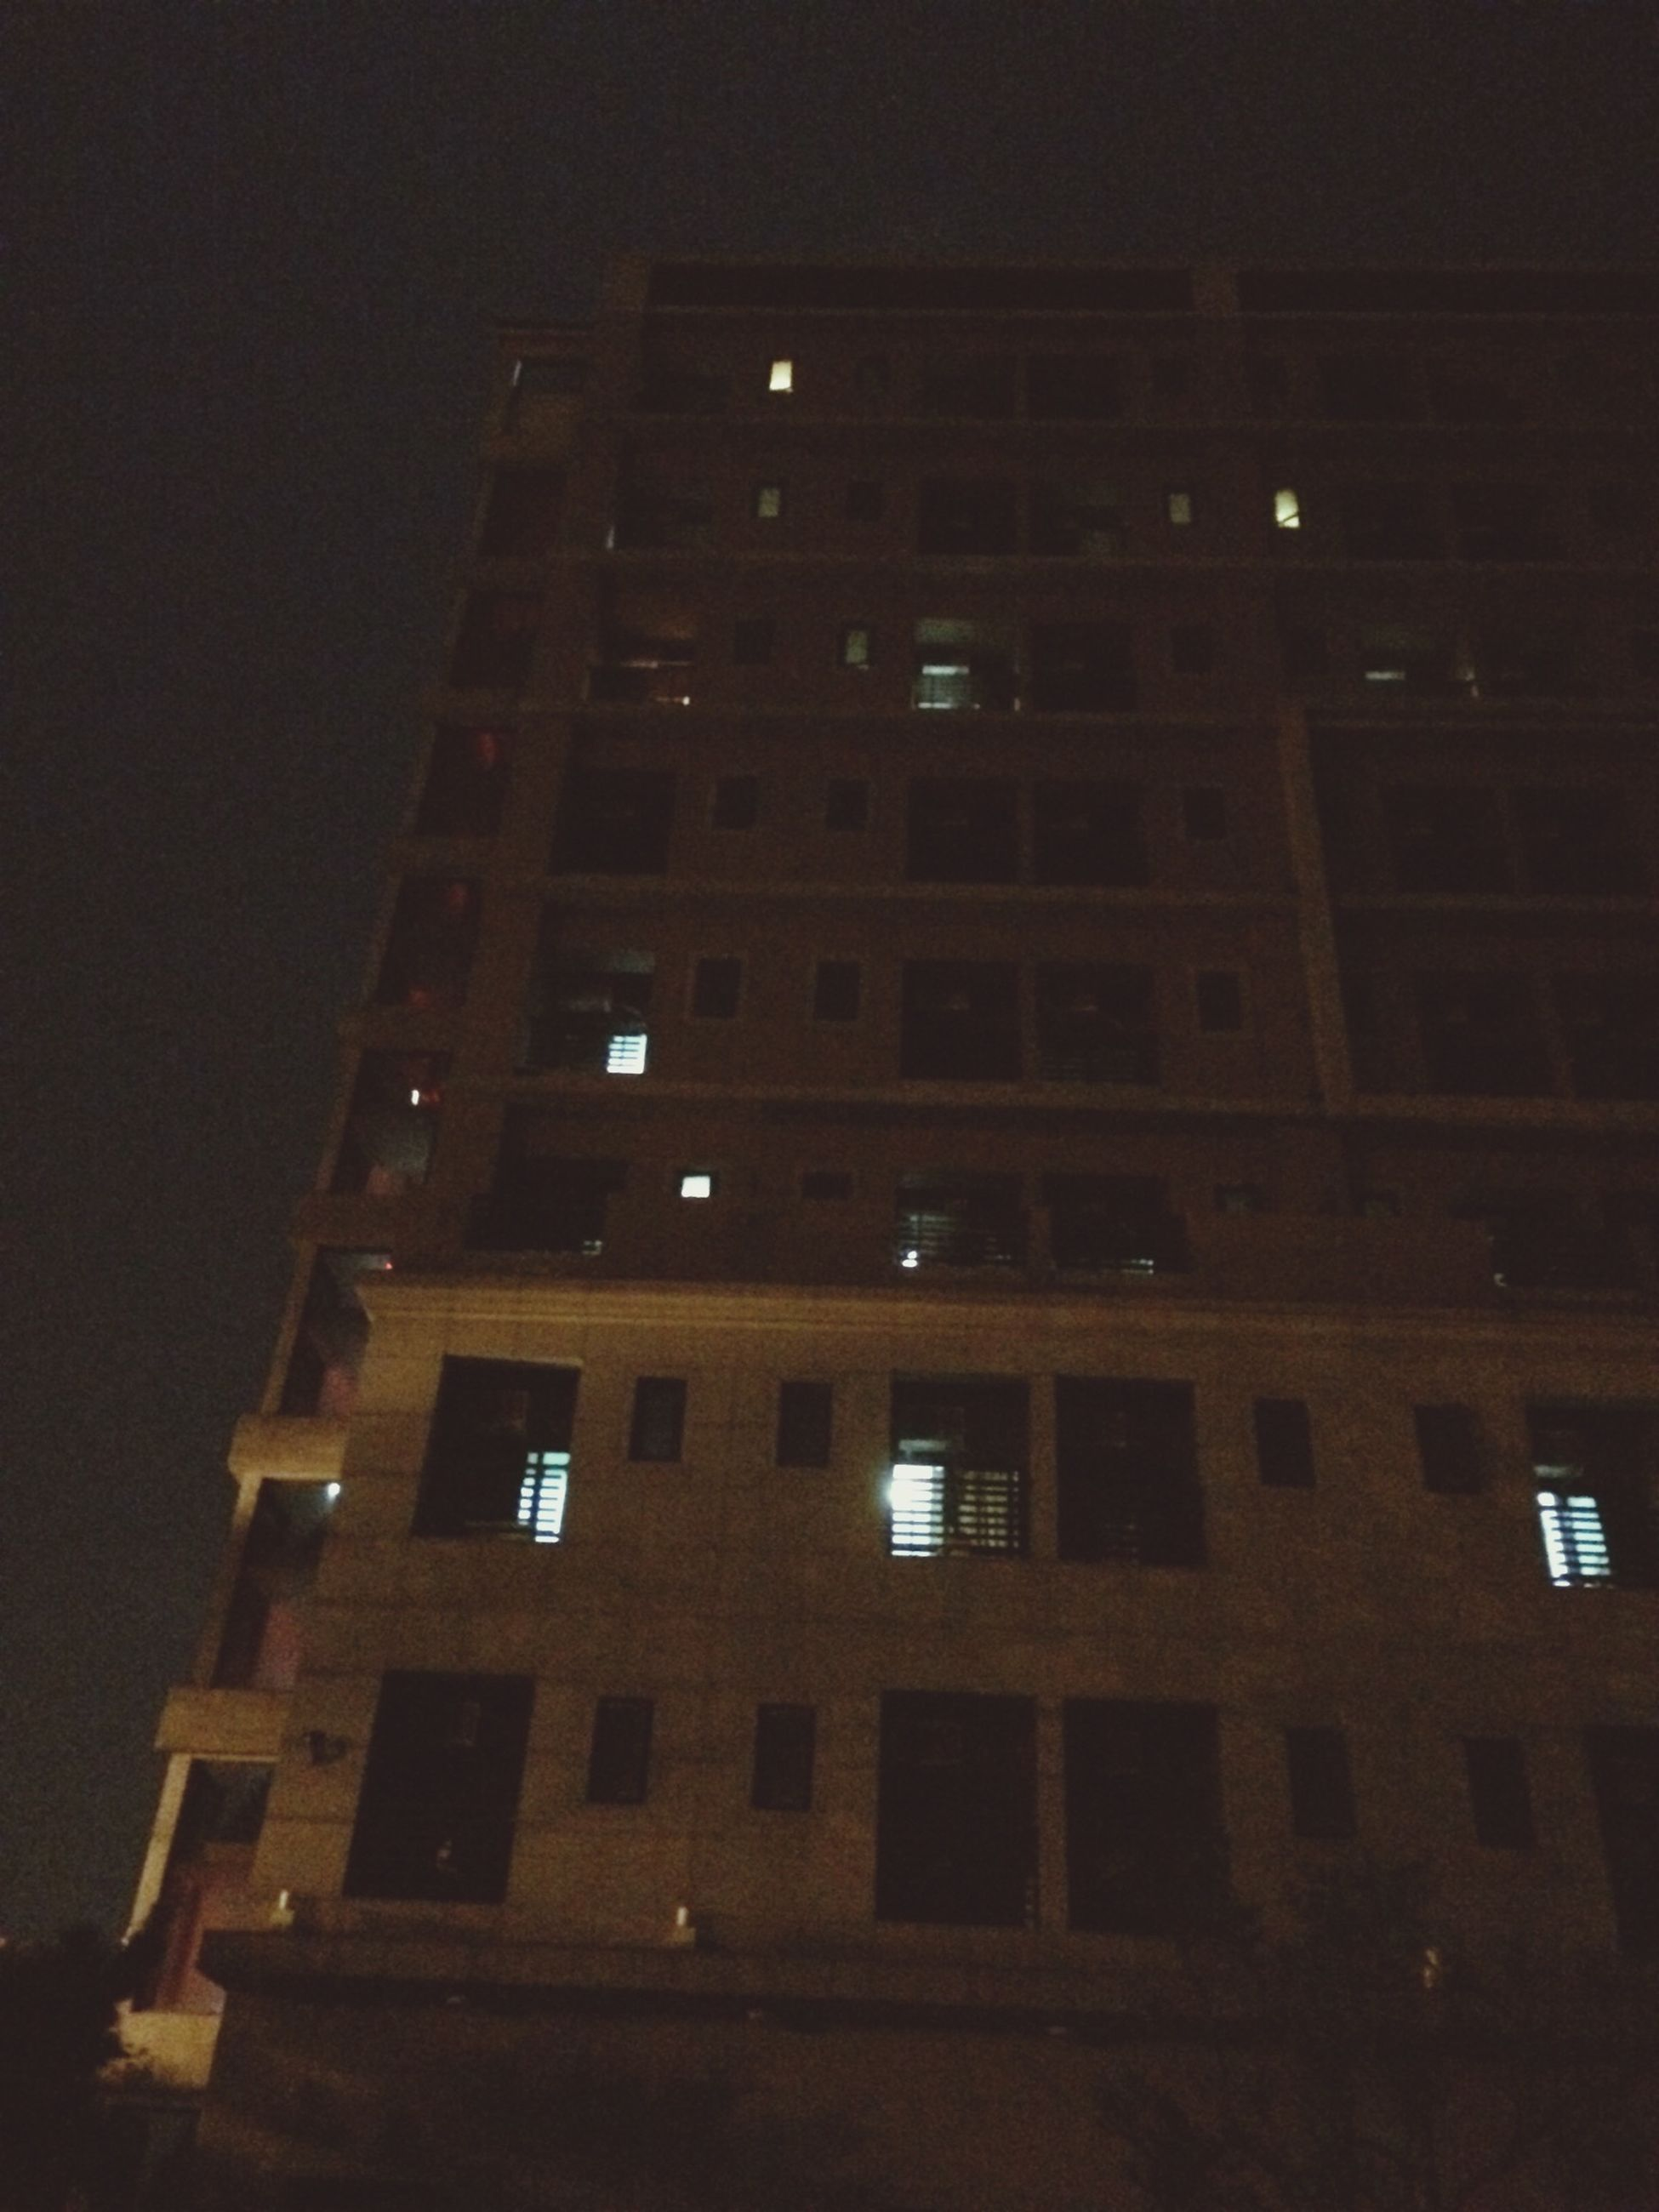 architecture, built structure, building exterior, low angle view, night, illuminated, building, window, city, sky, residential building, no people, outdoors, modern, residential structure, office building, tower, exterior, tall - high, clear sky